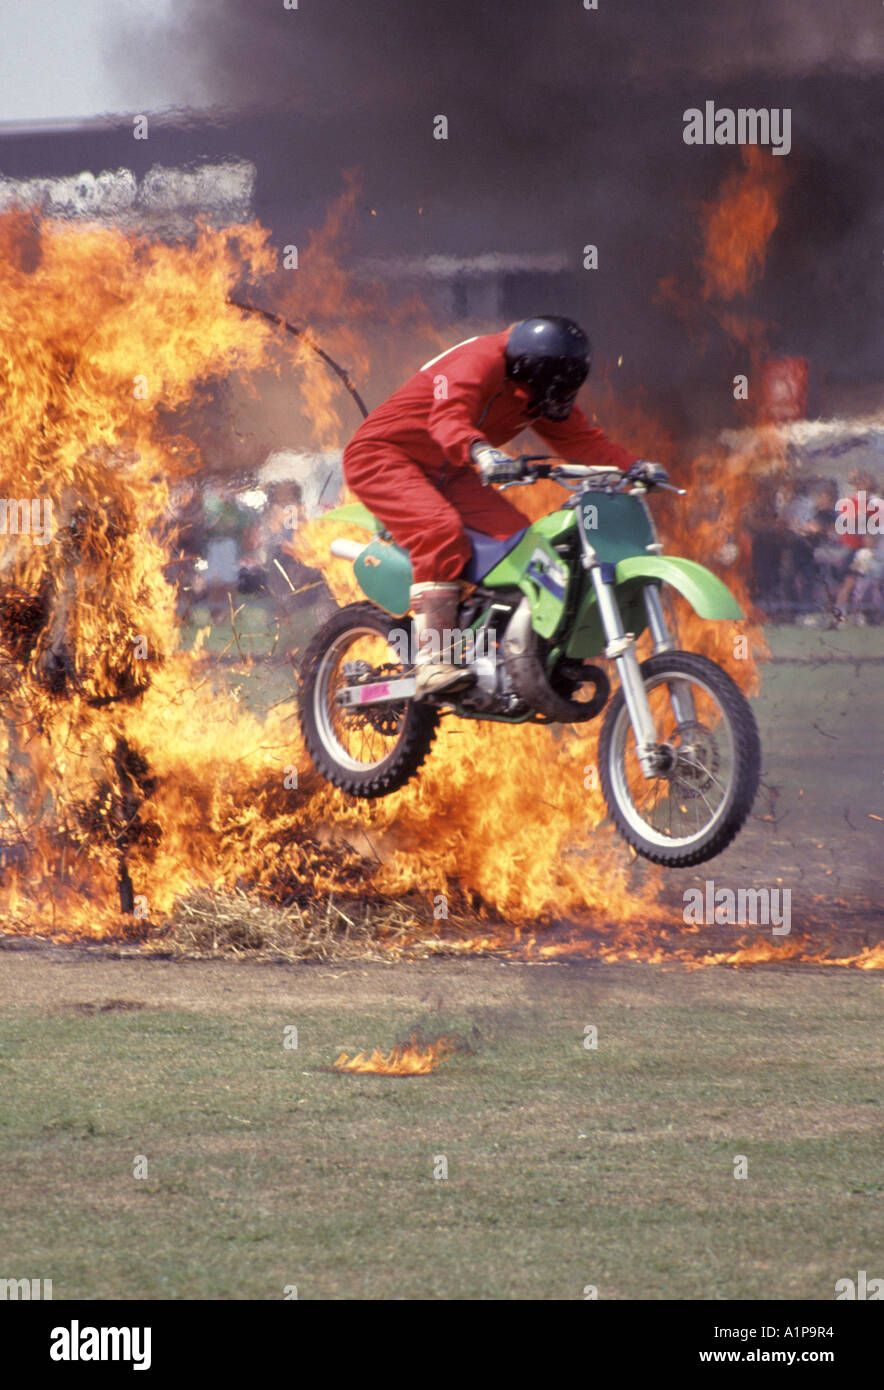 Stunt rider on motorcycle driving through burning tunnel made from straw bales soaked in petrol - Stock Image